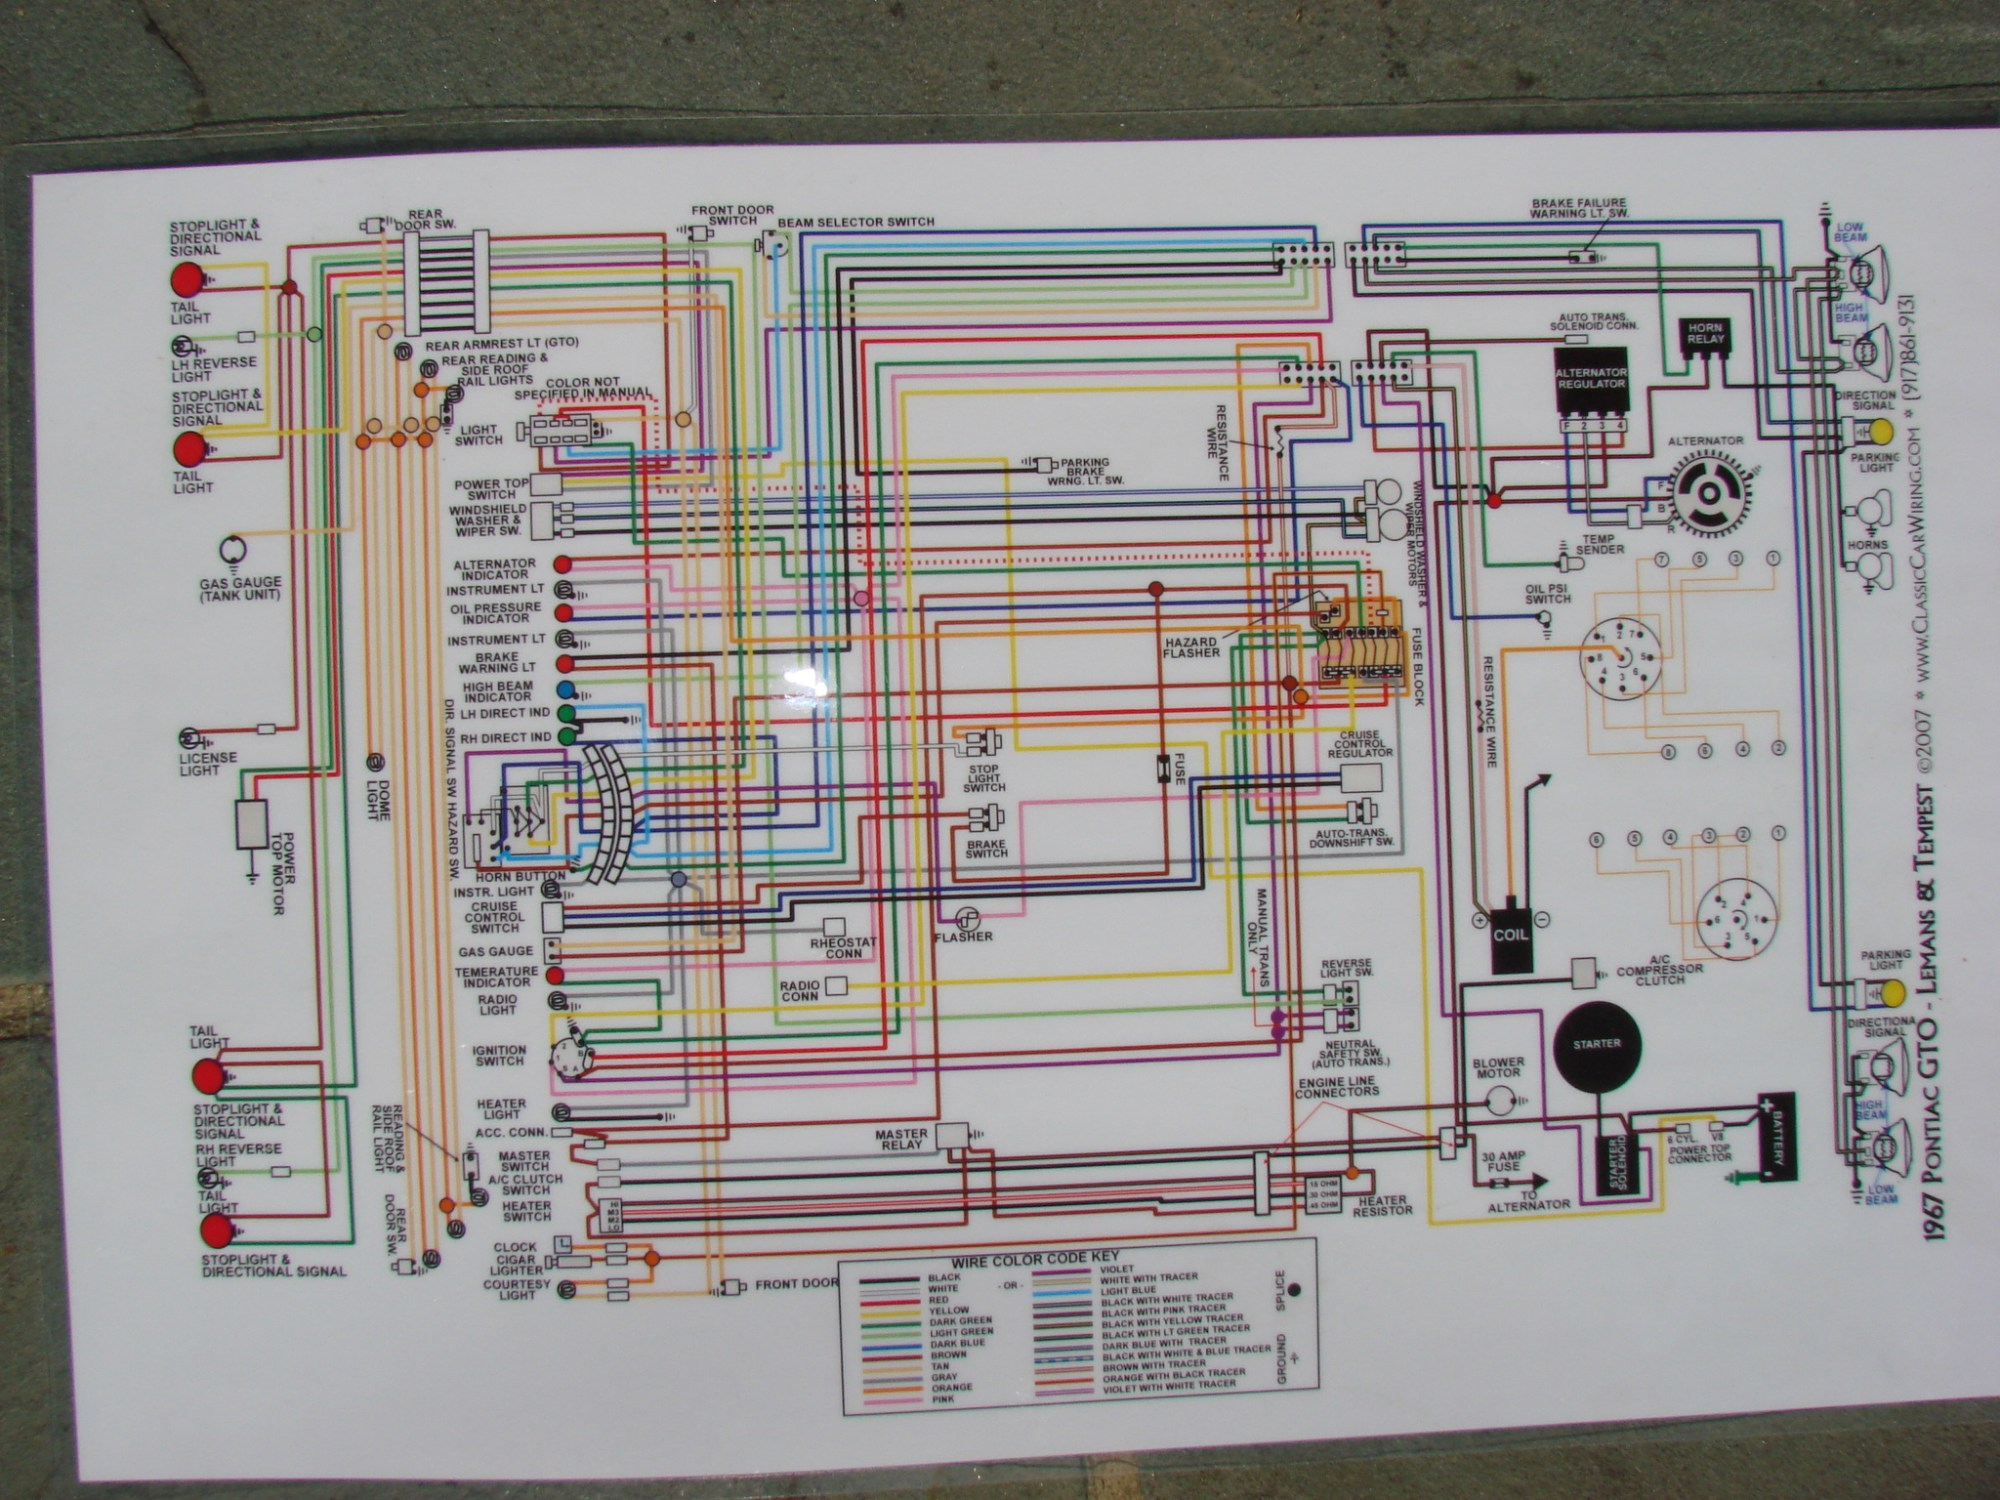 hight resolution of 1968 gto fuse box wiring wiring diagram schematics 67 pontiac gto wiring diagram 1968 gto